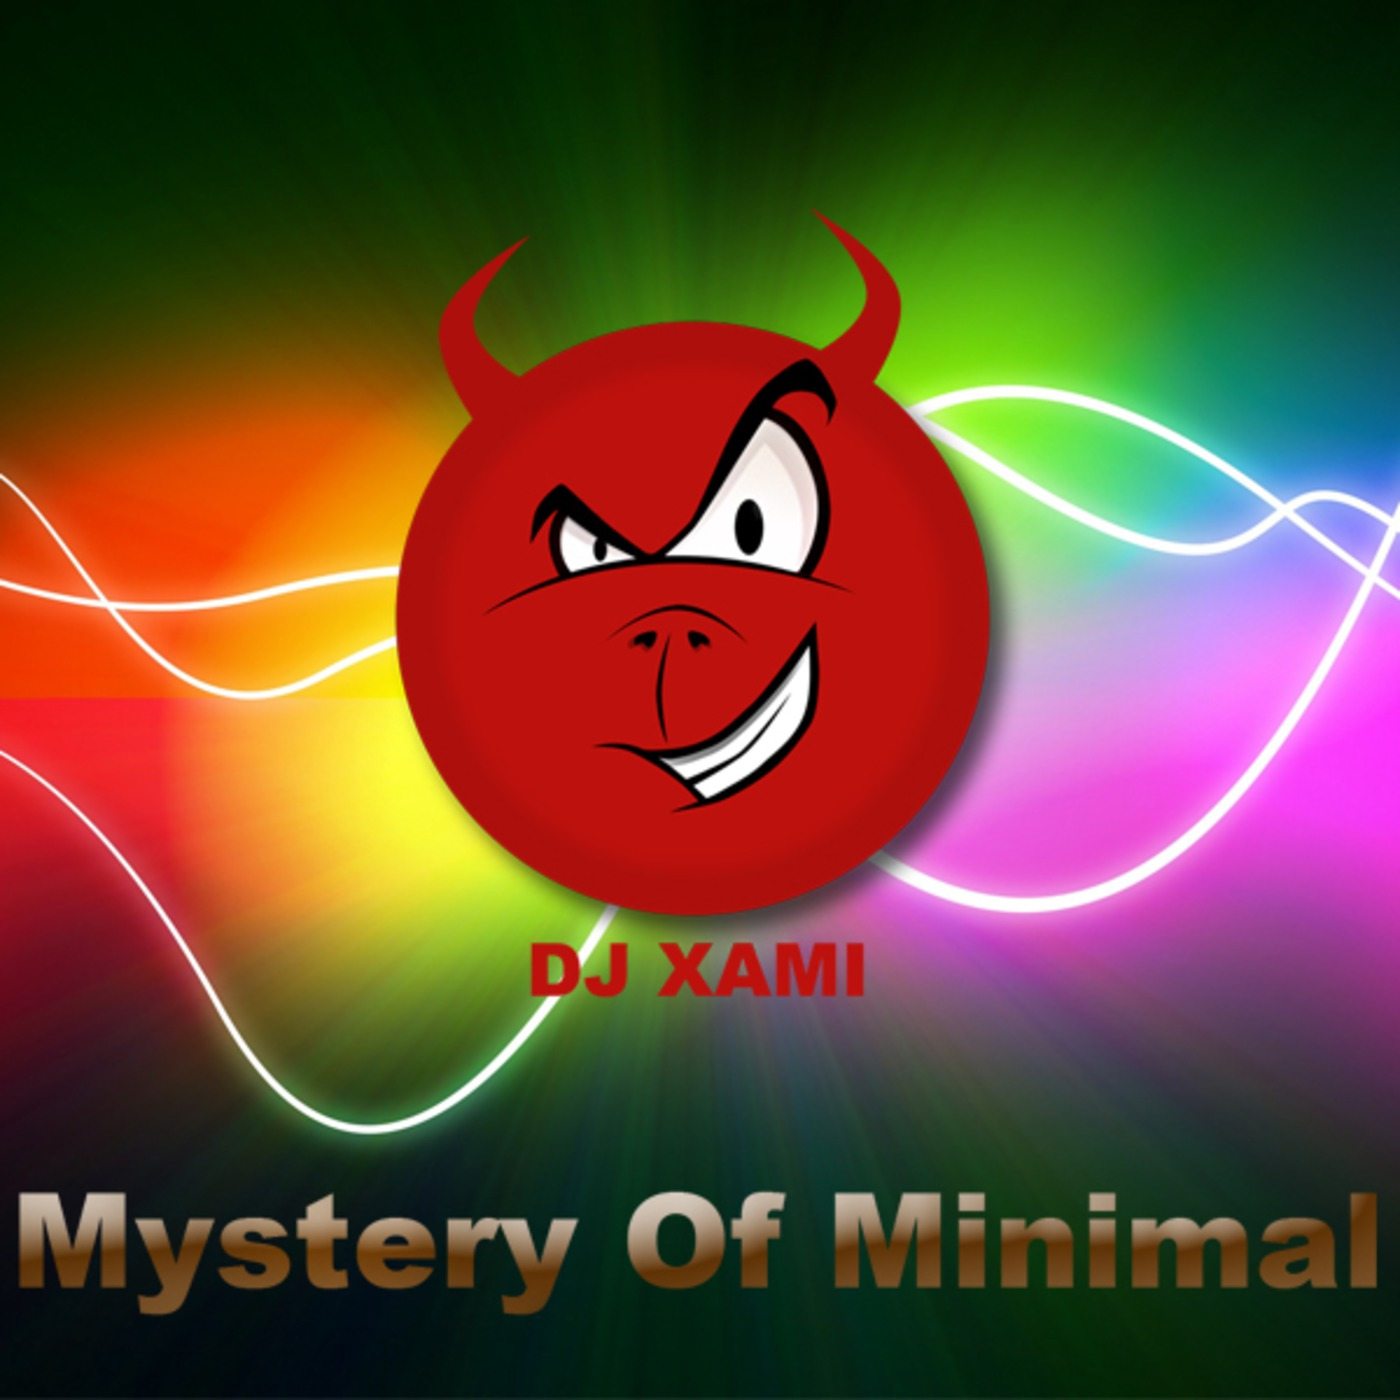 Mystery Of Minimal By DJ Xami